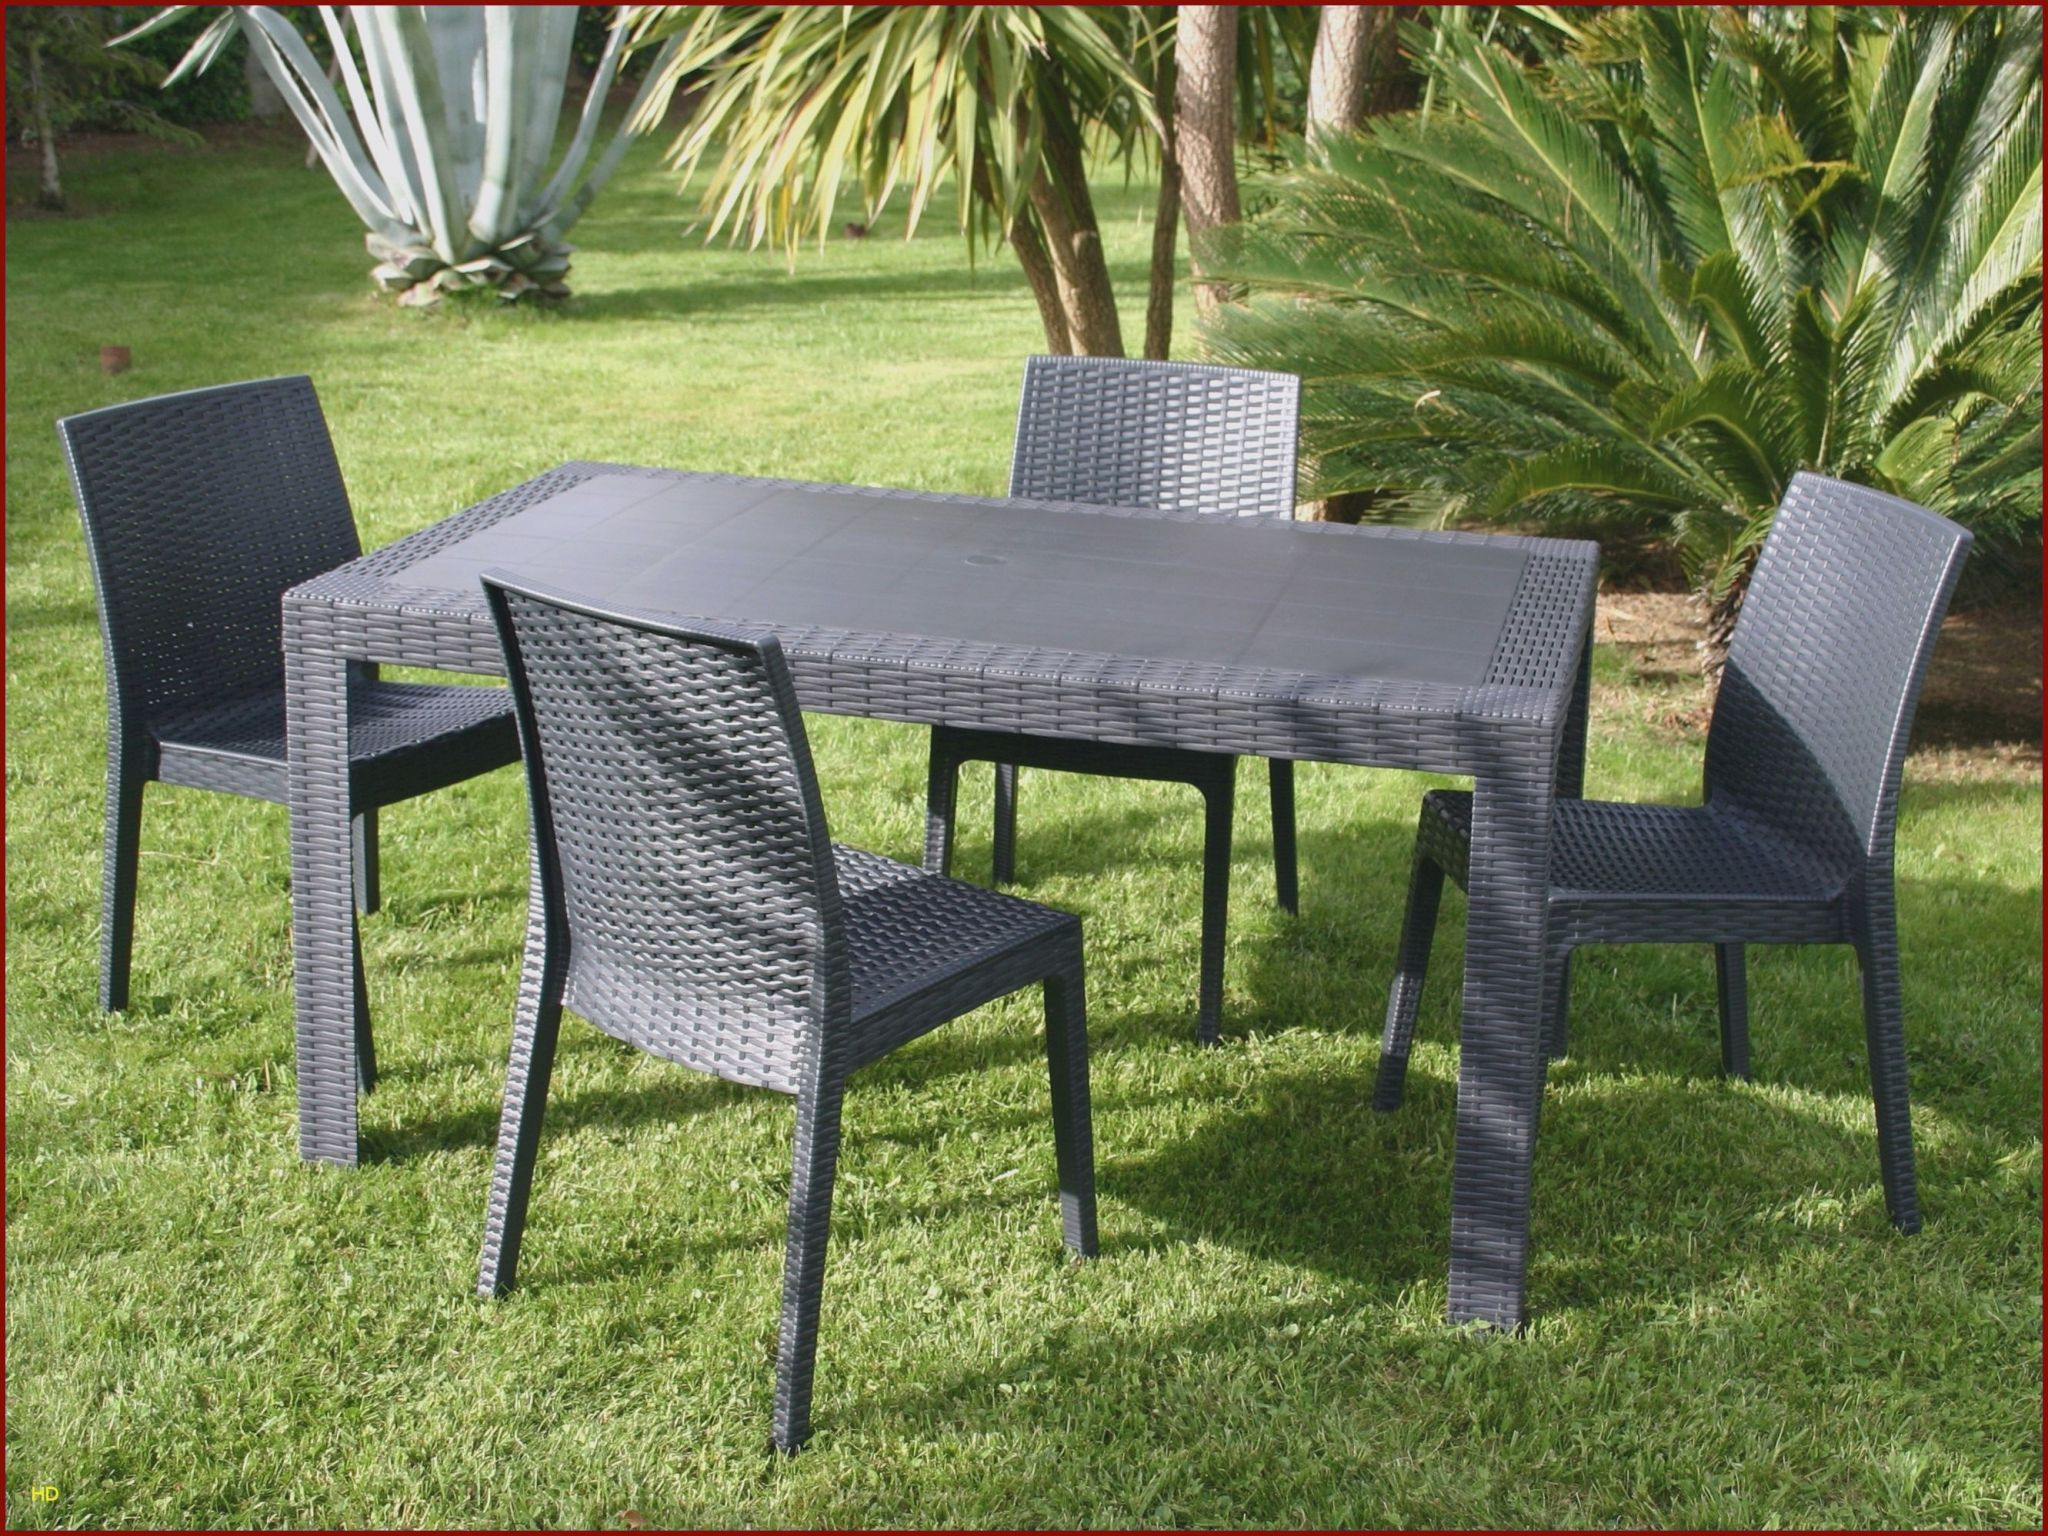 Table Chaise De Jardin Frais Chaises Luxe Chaise Ice 0d Table Jardin Resine Lovely Of 30 Charmant Table Chaise De Jardin